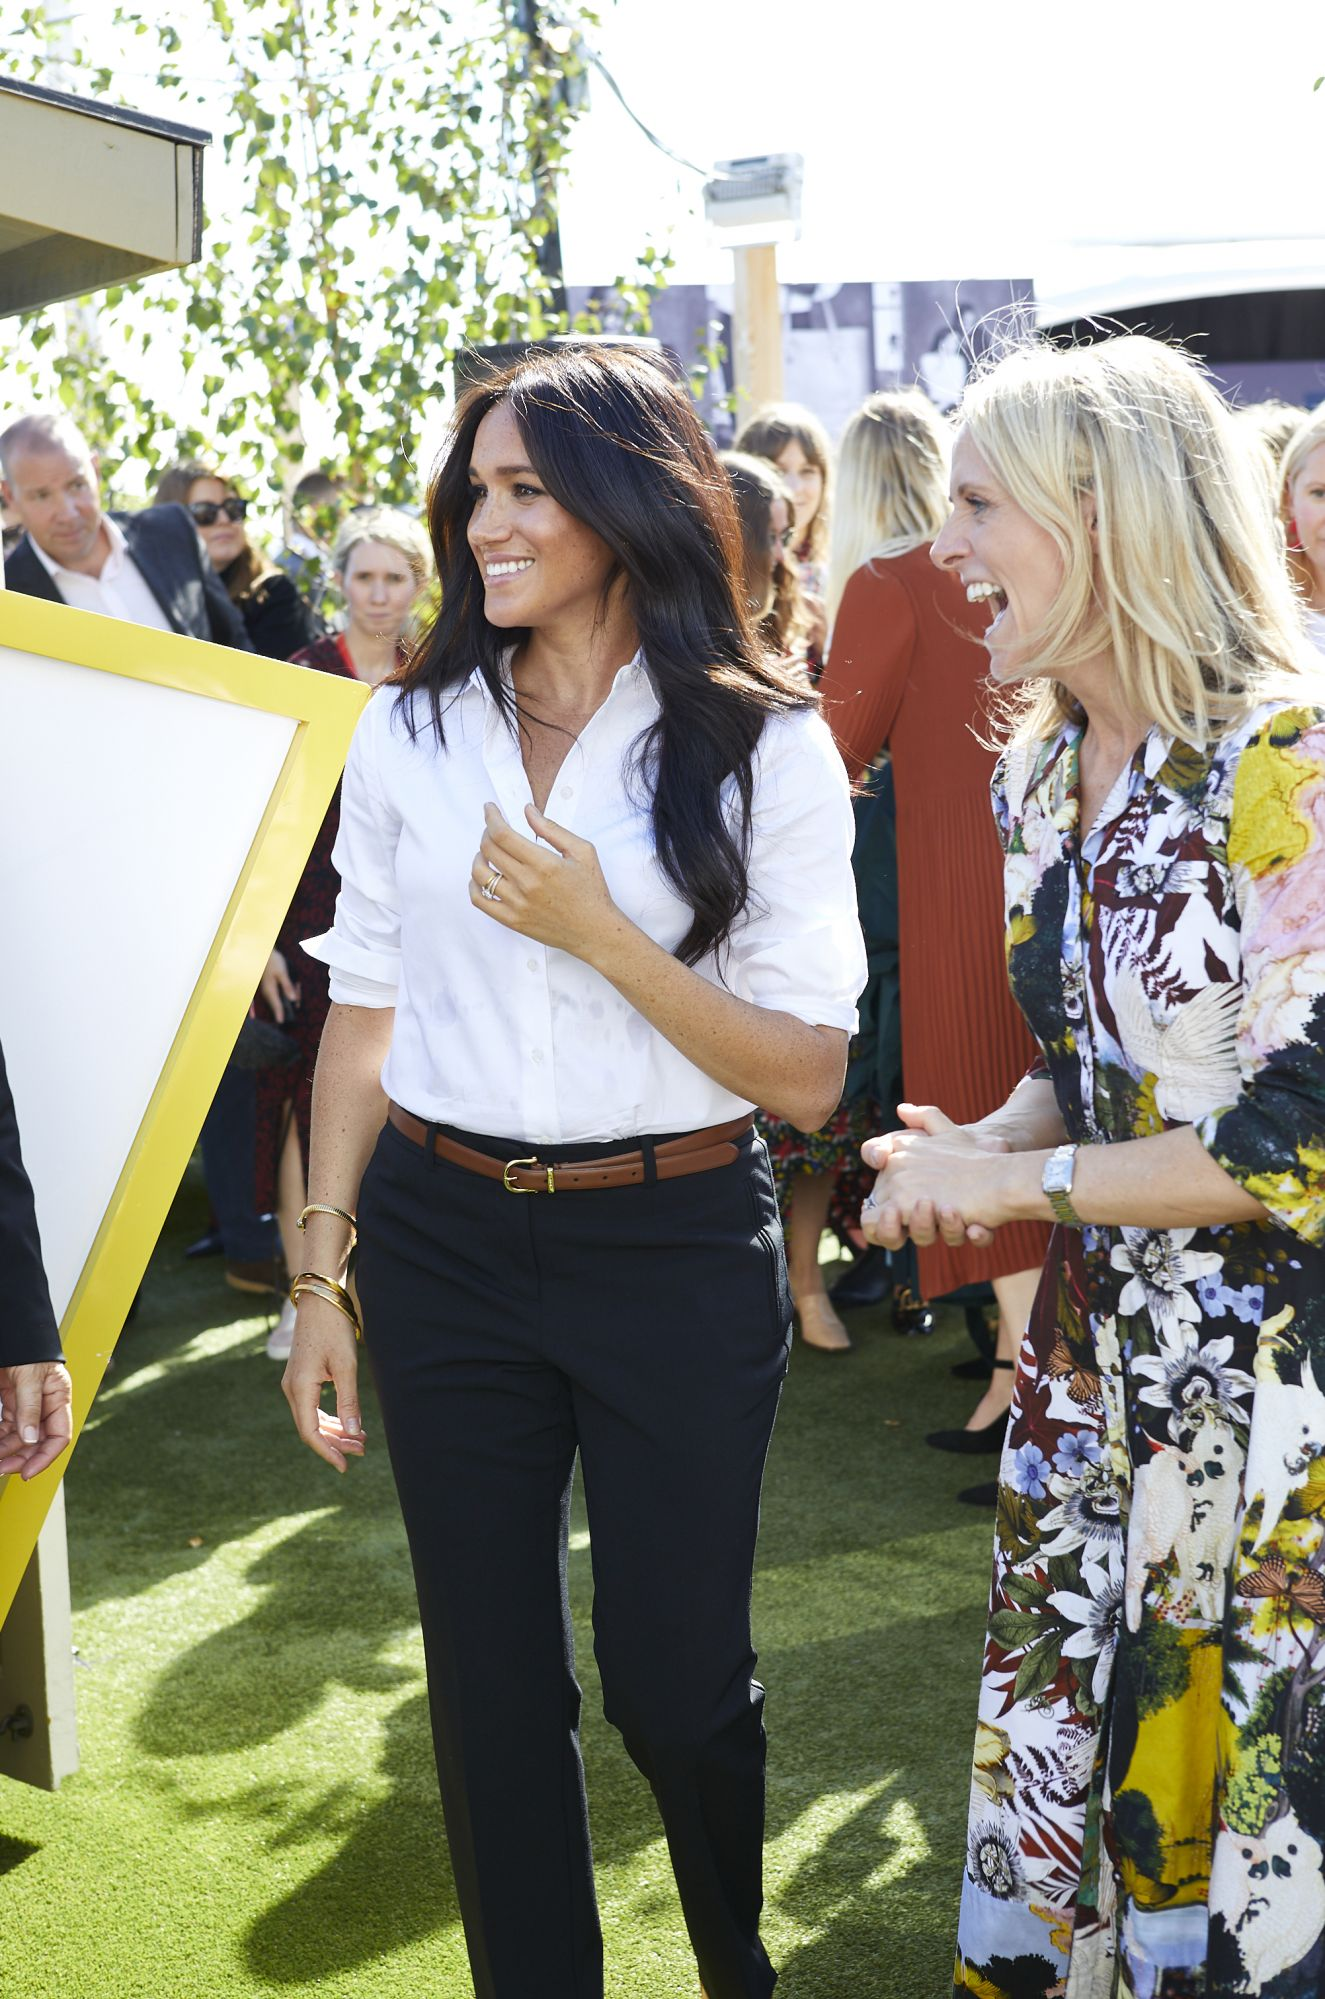 Meghan Markle Launched A 5-Piece Fashion Line To Benefit Smart Works Charity